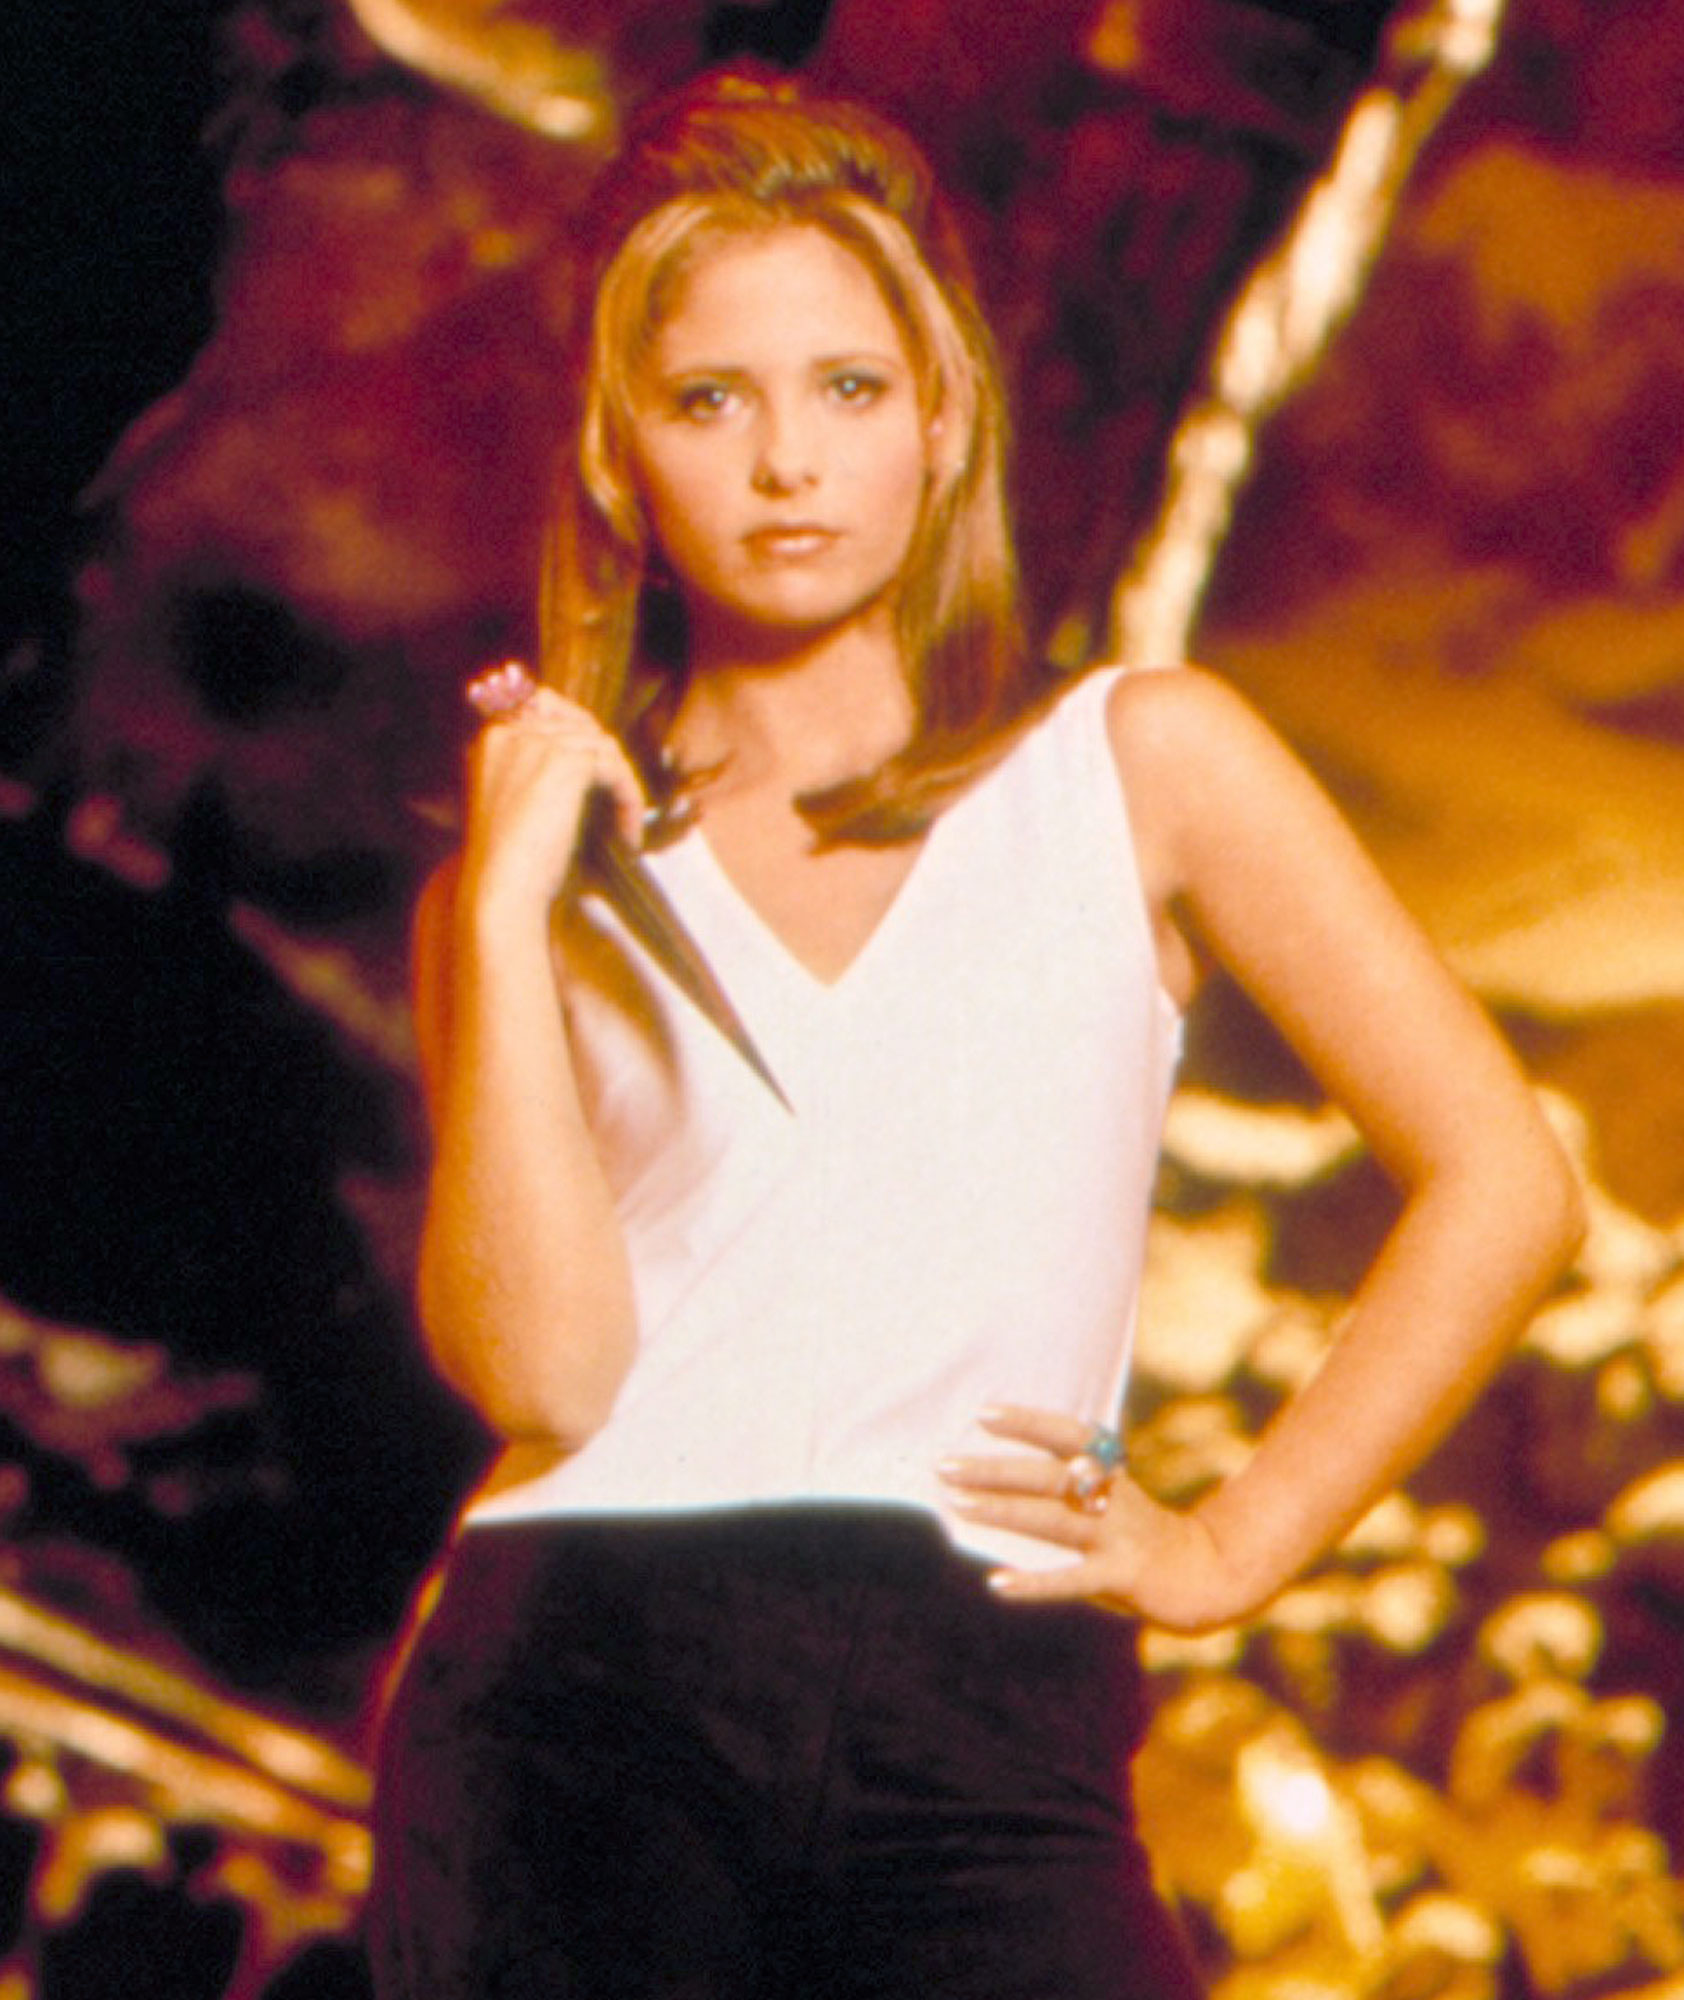 BUFFY THE VAMPIRE SLAYER, Sarah Michelle Gellar, 1997-2003, Season 1, 1997, TM and Copyright © 20th